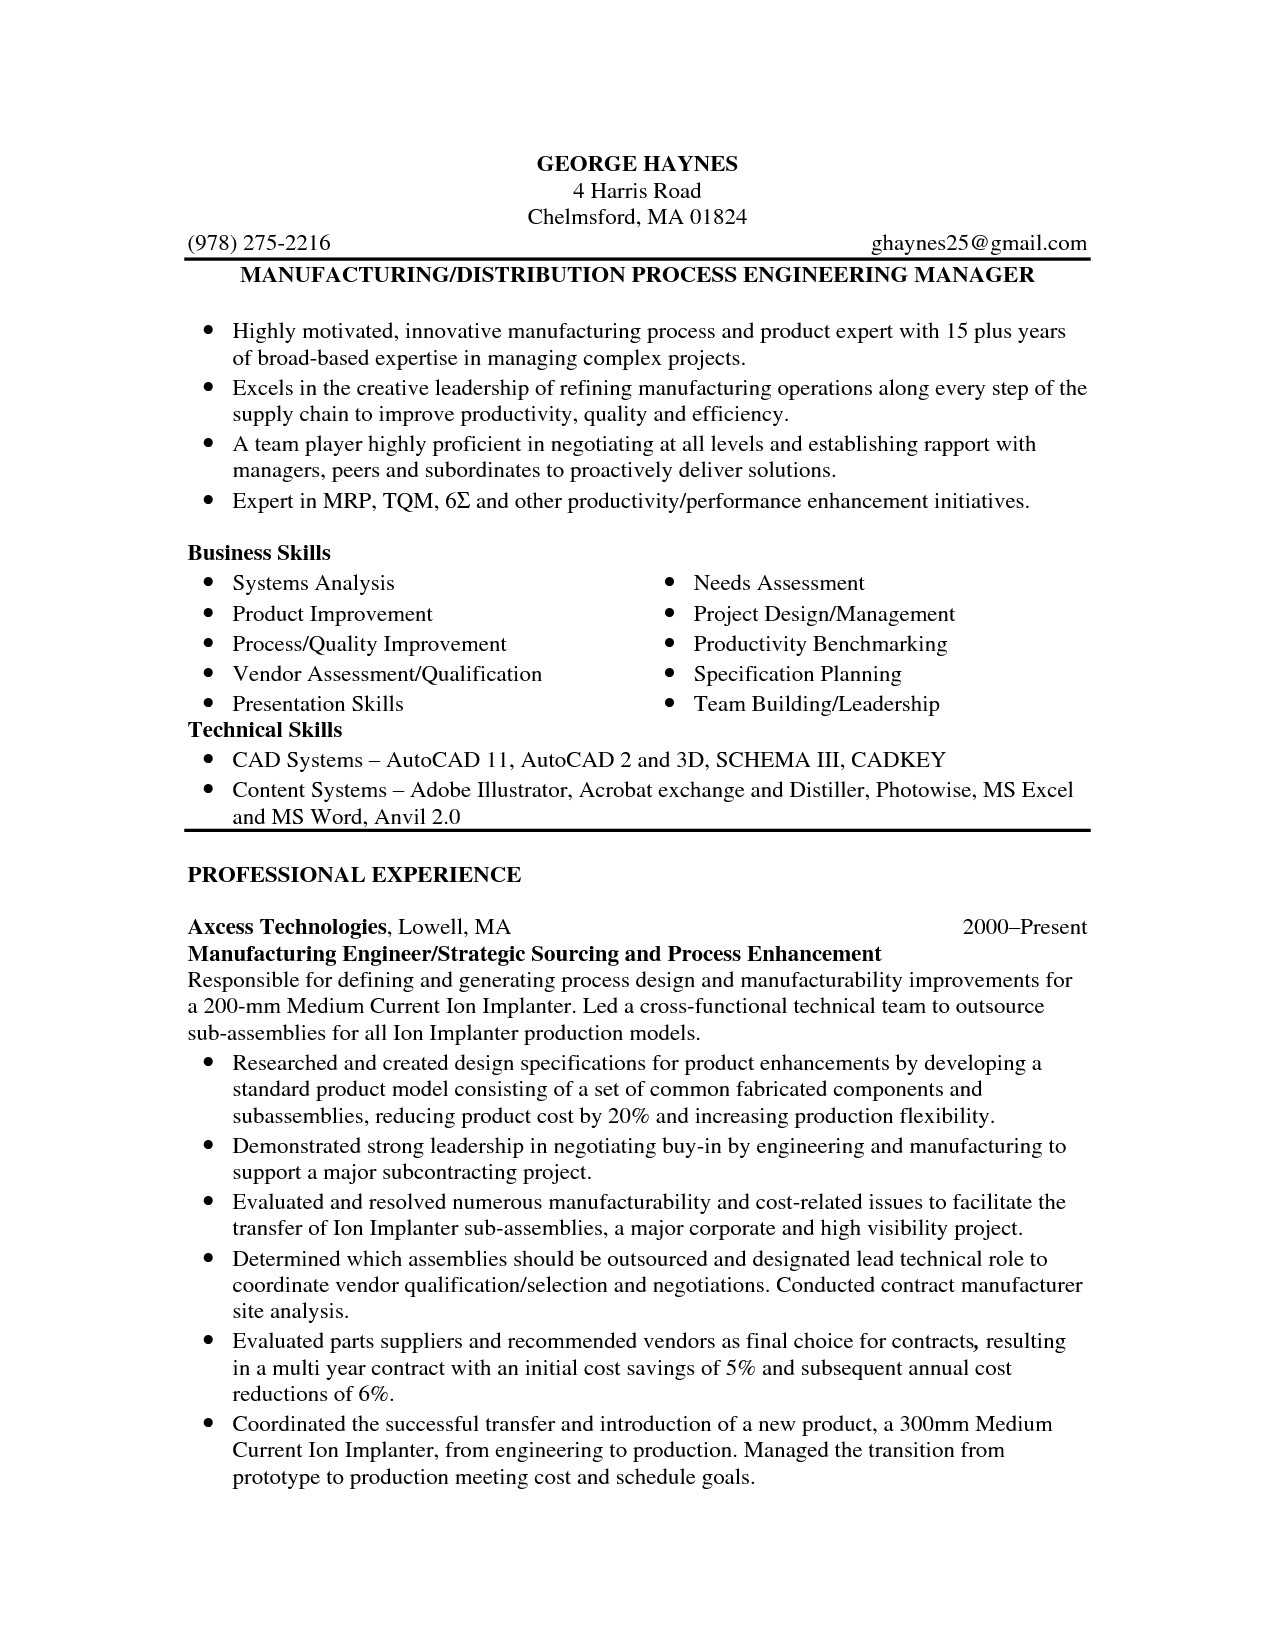 Chapter 7 Worksheet Protective Sports Devices Along with Proofreading Worksheets Pdf New 108 Best Editing and Revising